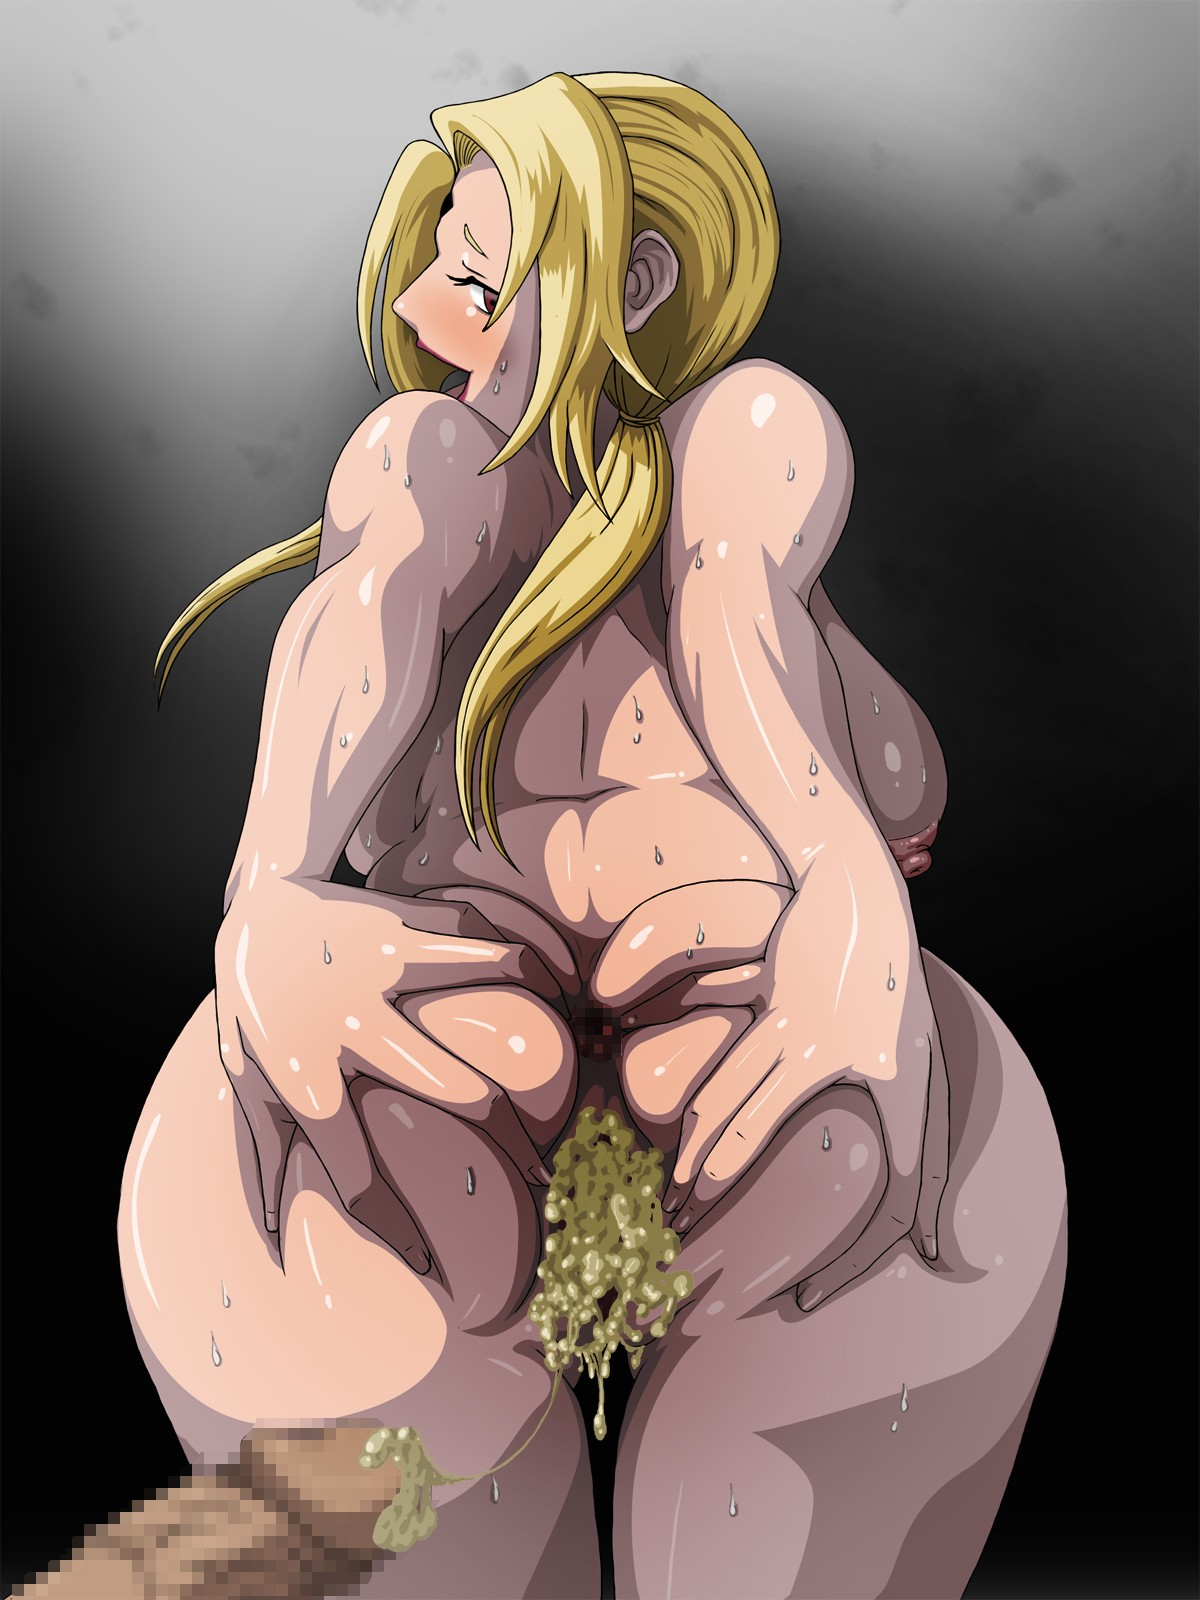 Fuck lady tsunade love join